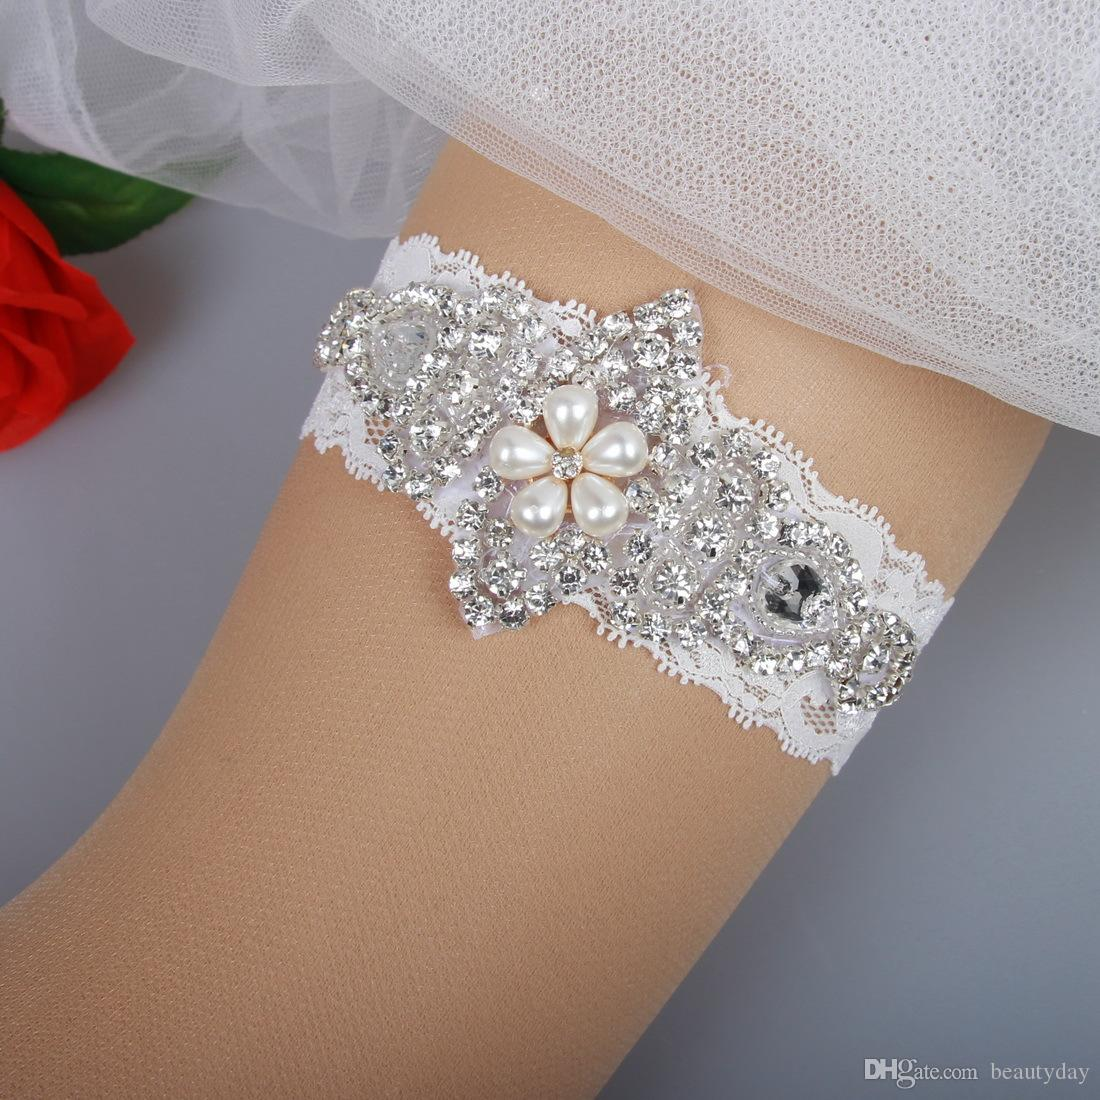 fb4b7e75d Bridal Garters Lace Rhinestones Pearls Beads Vintage Prom Homecoming Wedding  Garter Set Bridal Leg Garter Belt Set Plus Size Bridal Garter Set Garter  Sets ...